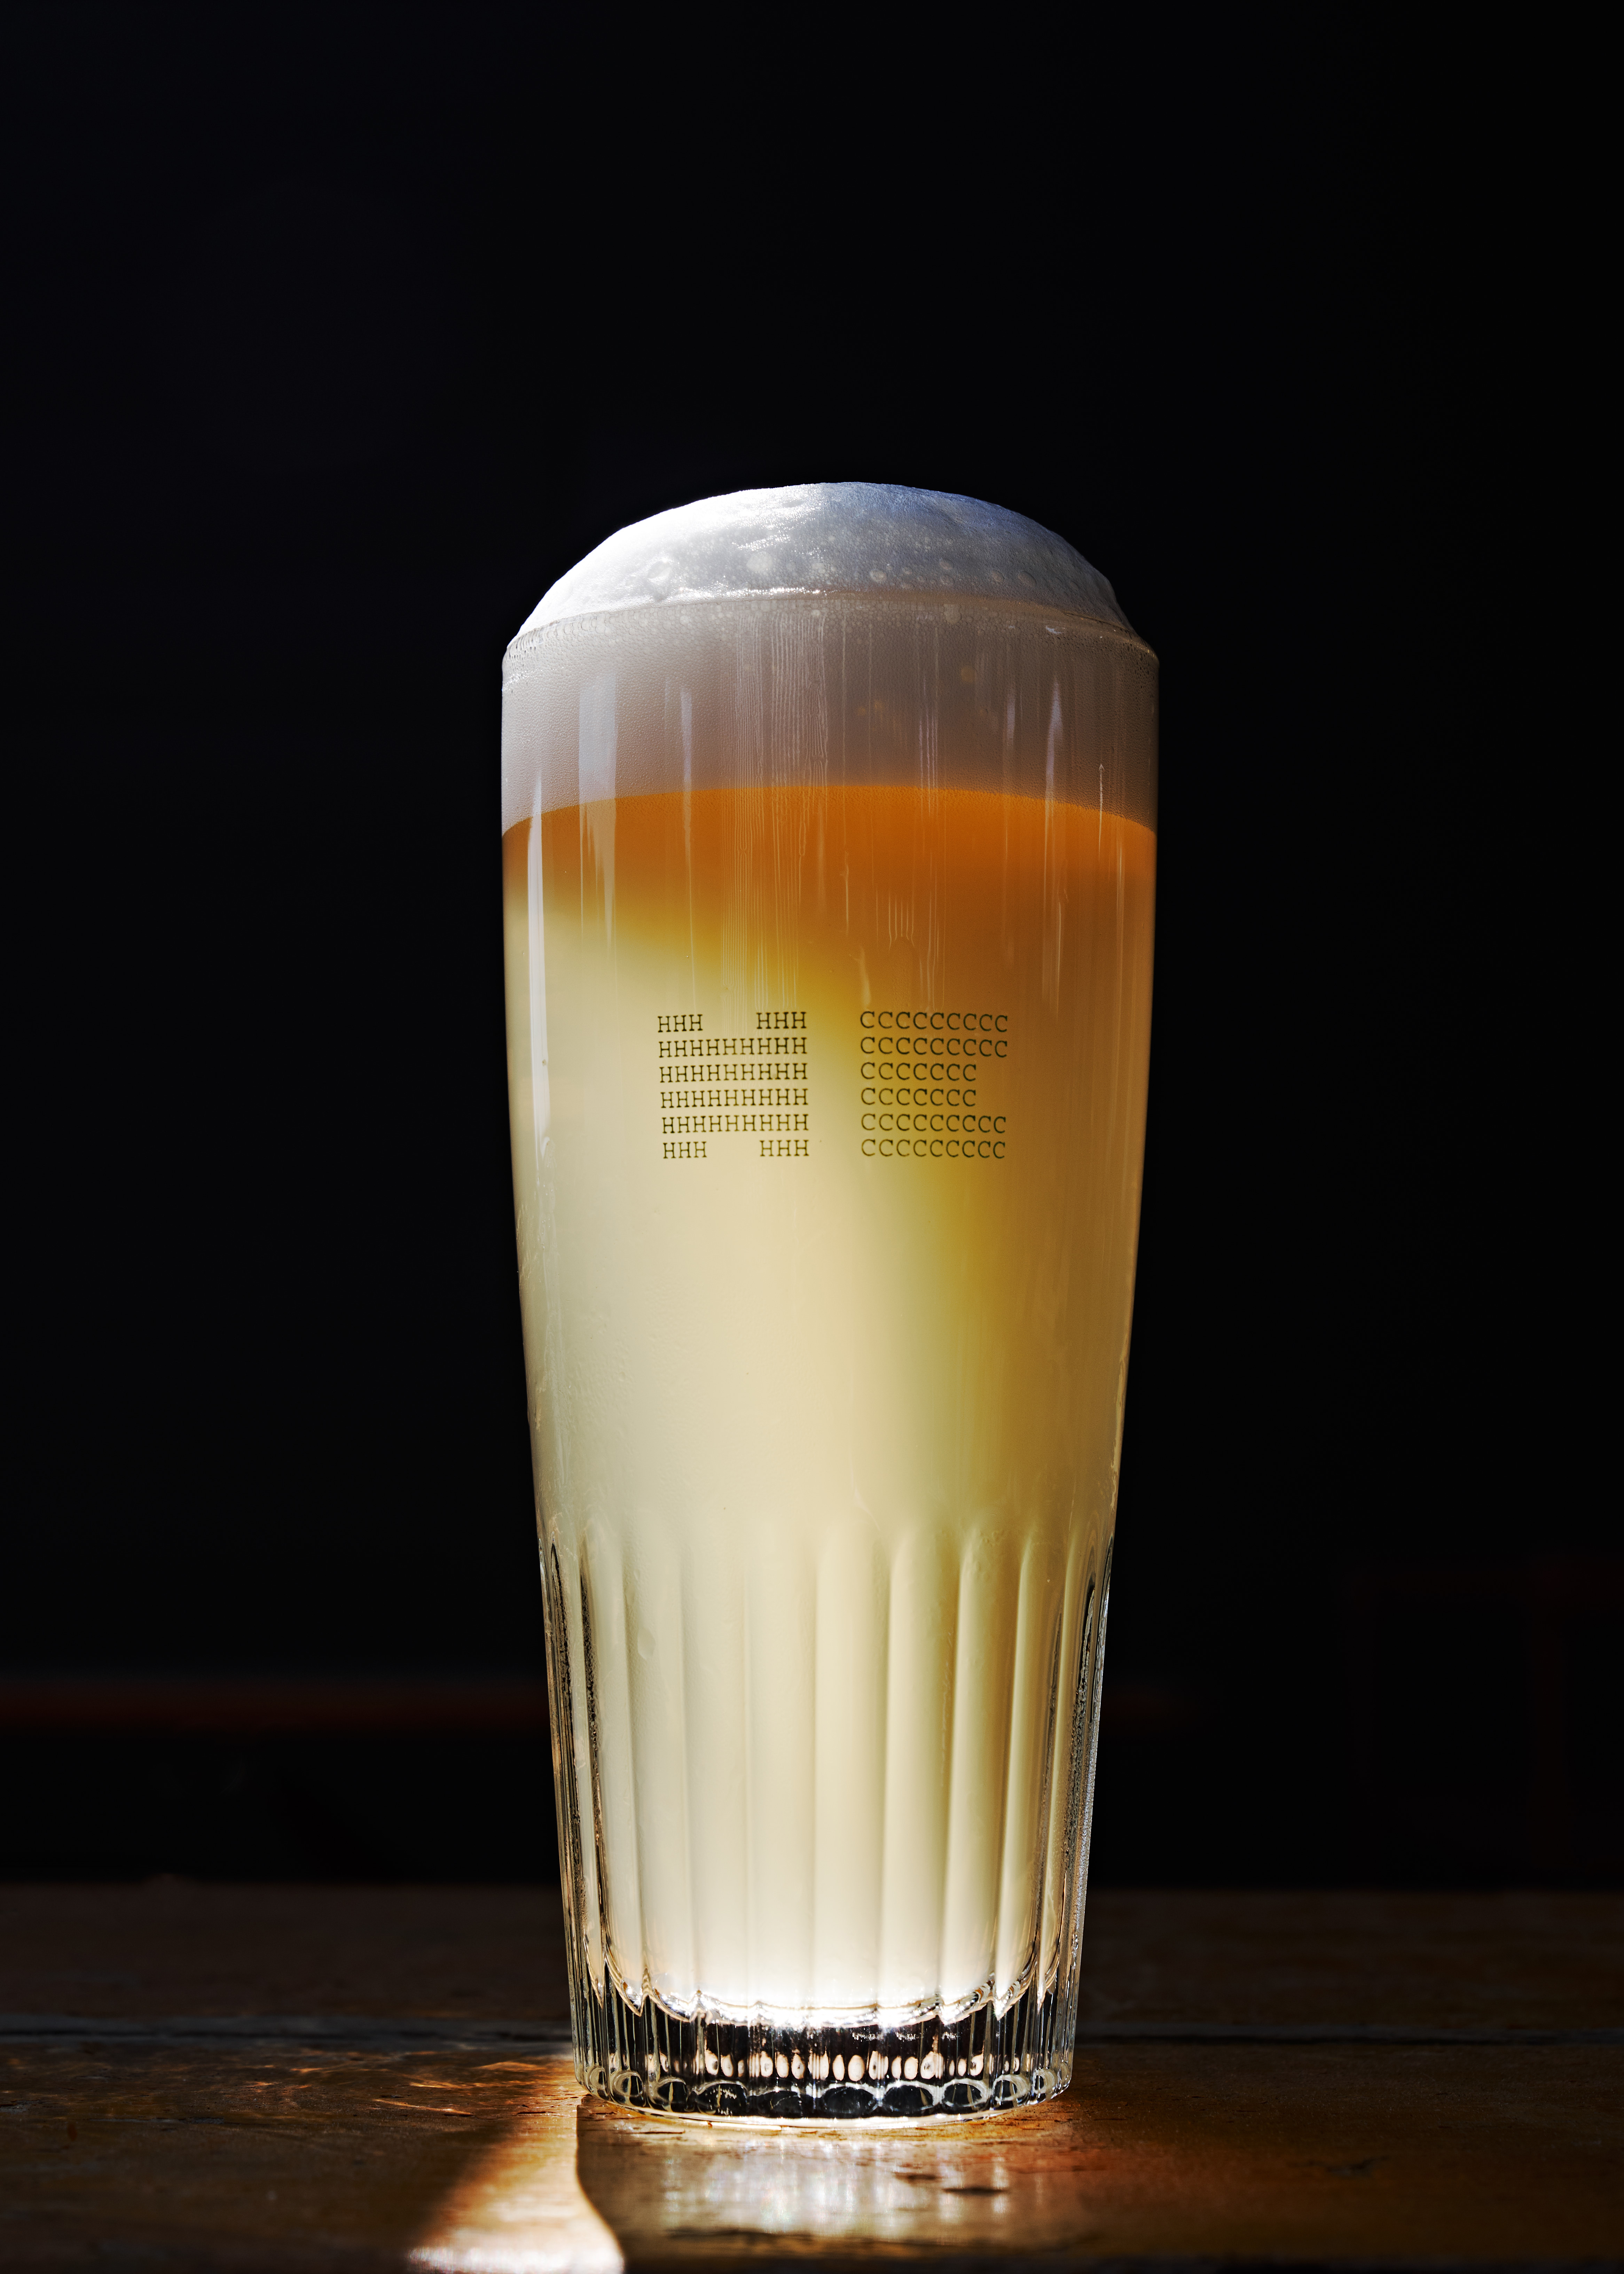 A pint of beer with head against a black background at Halfway Crooks Brewing in Summerhill